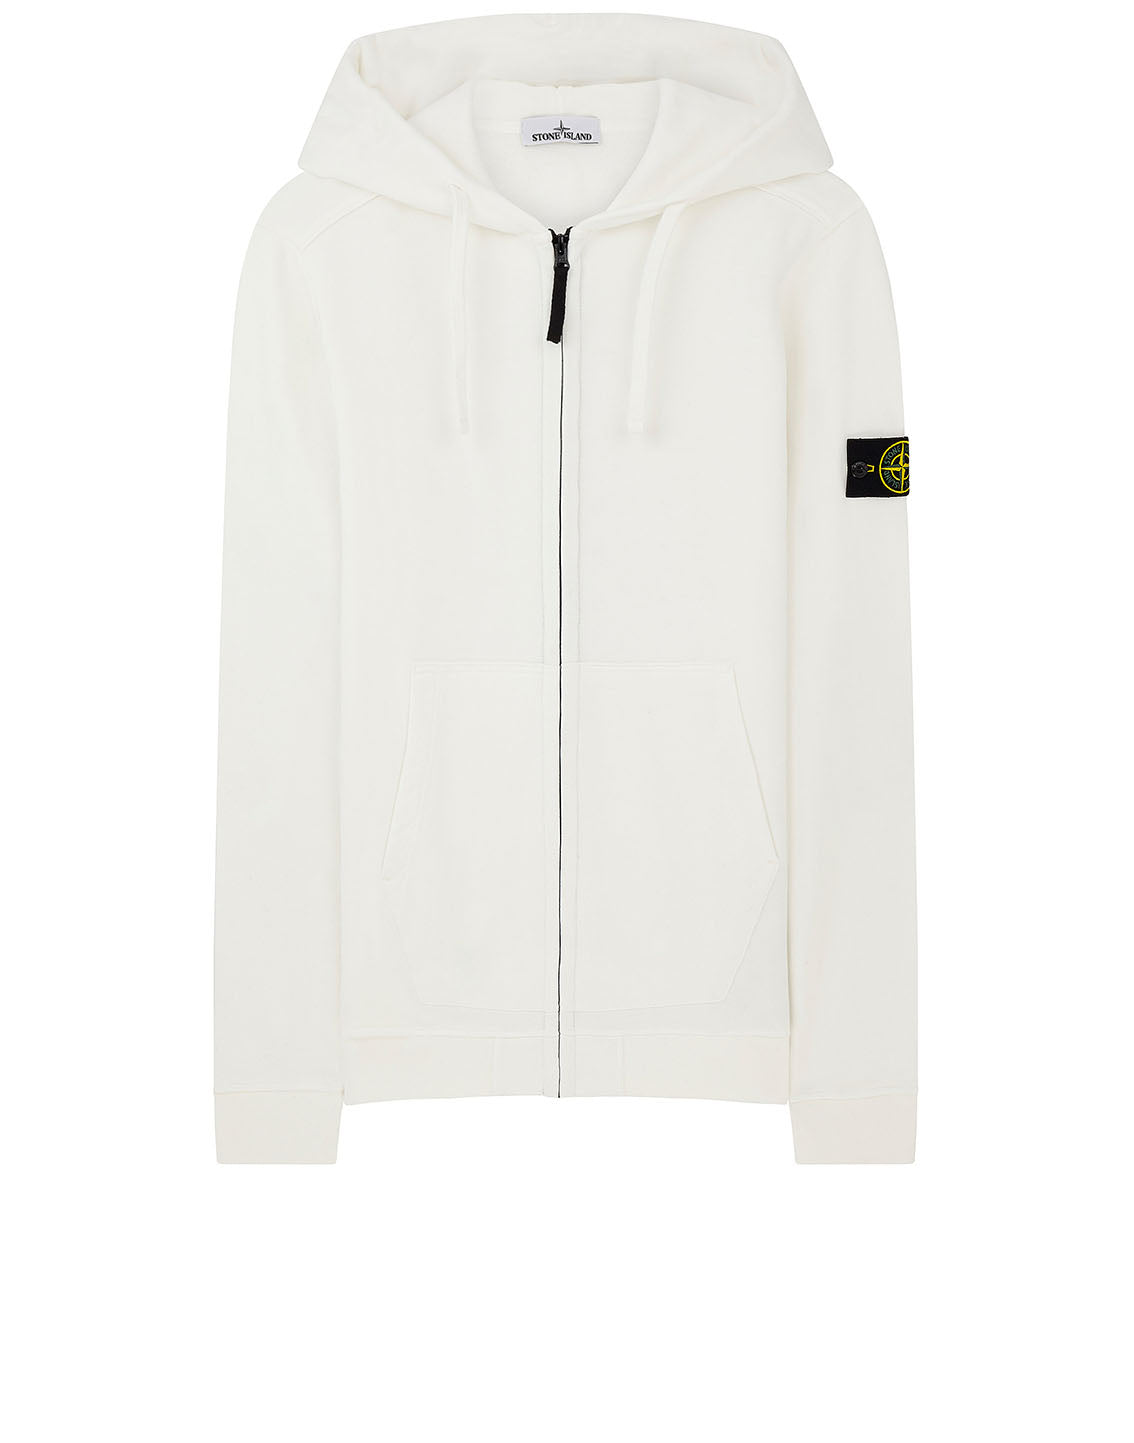 60220 Hooded Sweatshirt in Natural